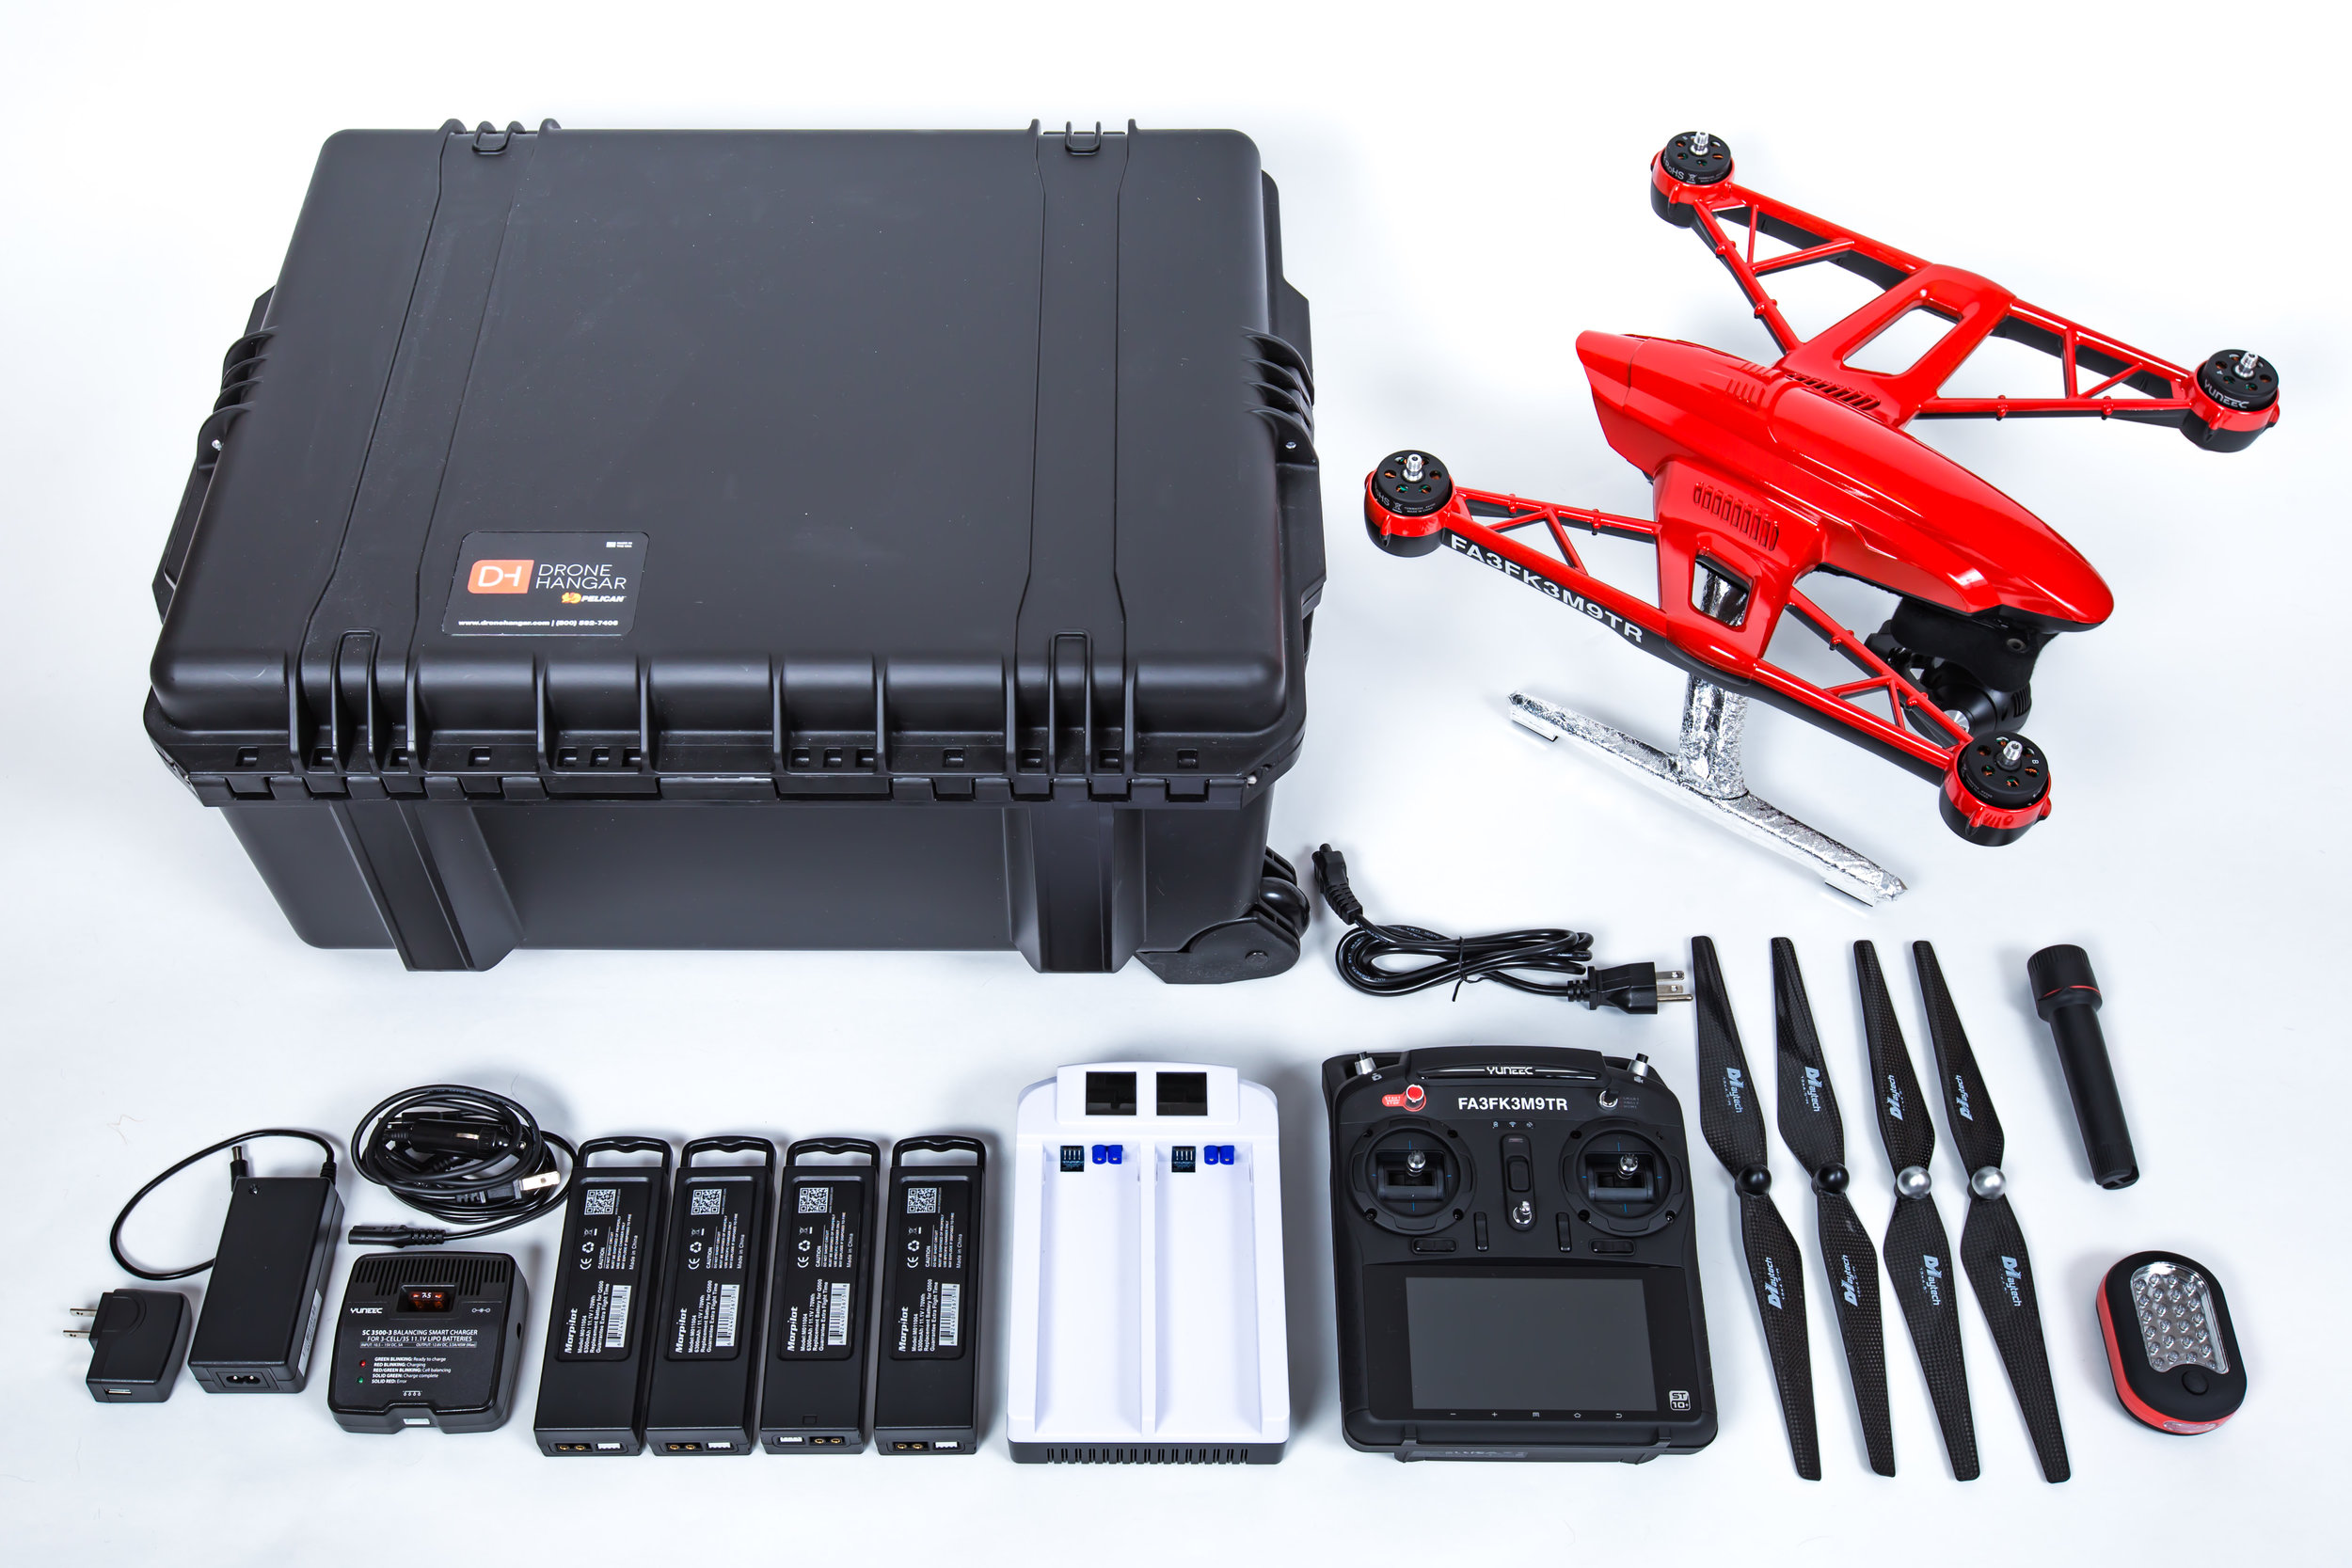 Complete Kit - Police, Fire, and Rescue.Your choice of a water tight Pelican case, or soft fabric for light weight durability.Includes everything needed to provide years of dependable service for years to come.